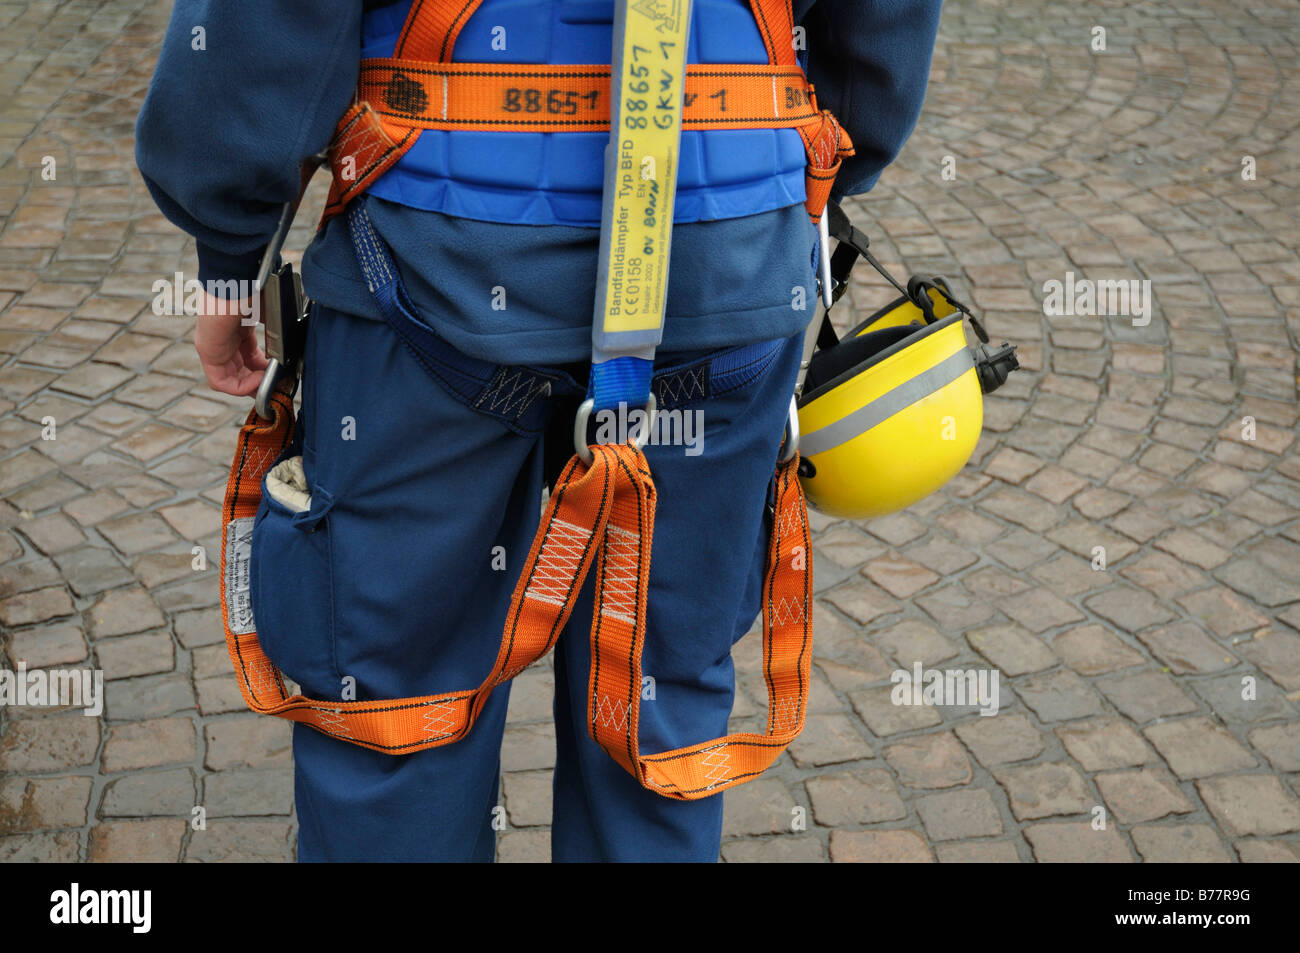 THW employee, rear view, partial view, wearing a security belt and a helmet on his hips, European Norms - Stock Image